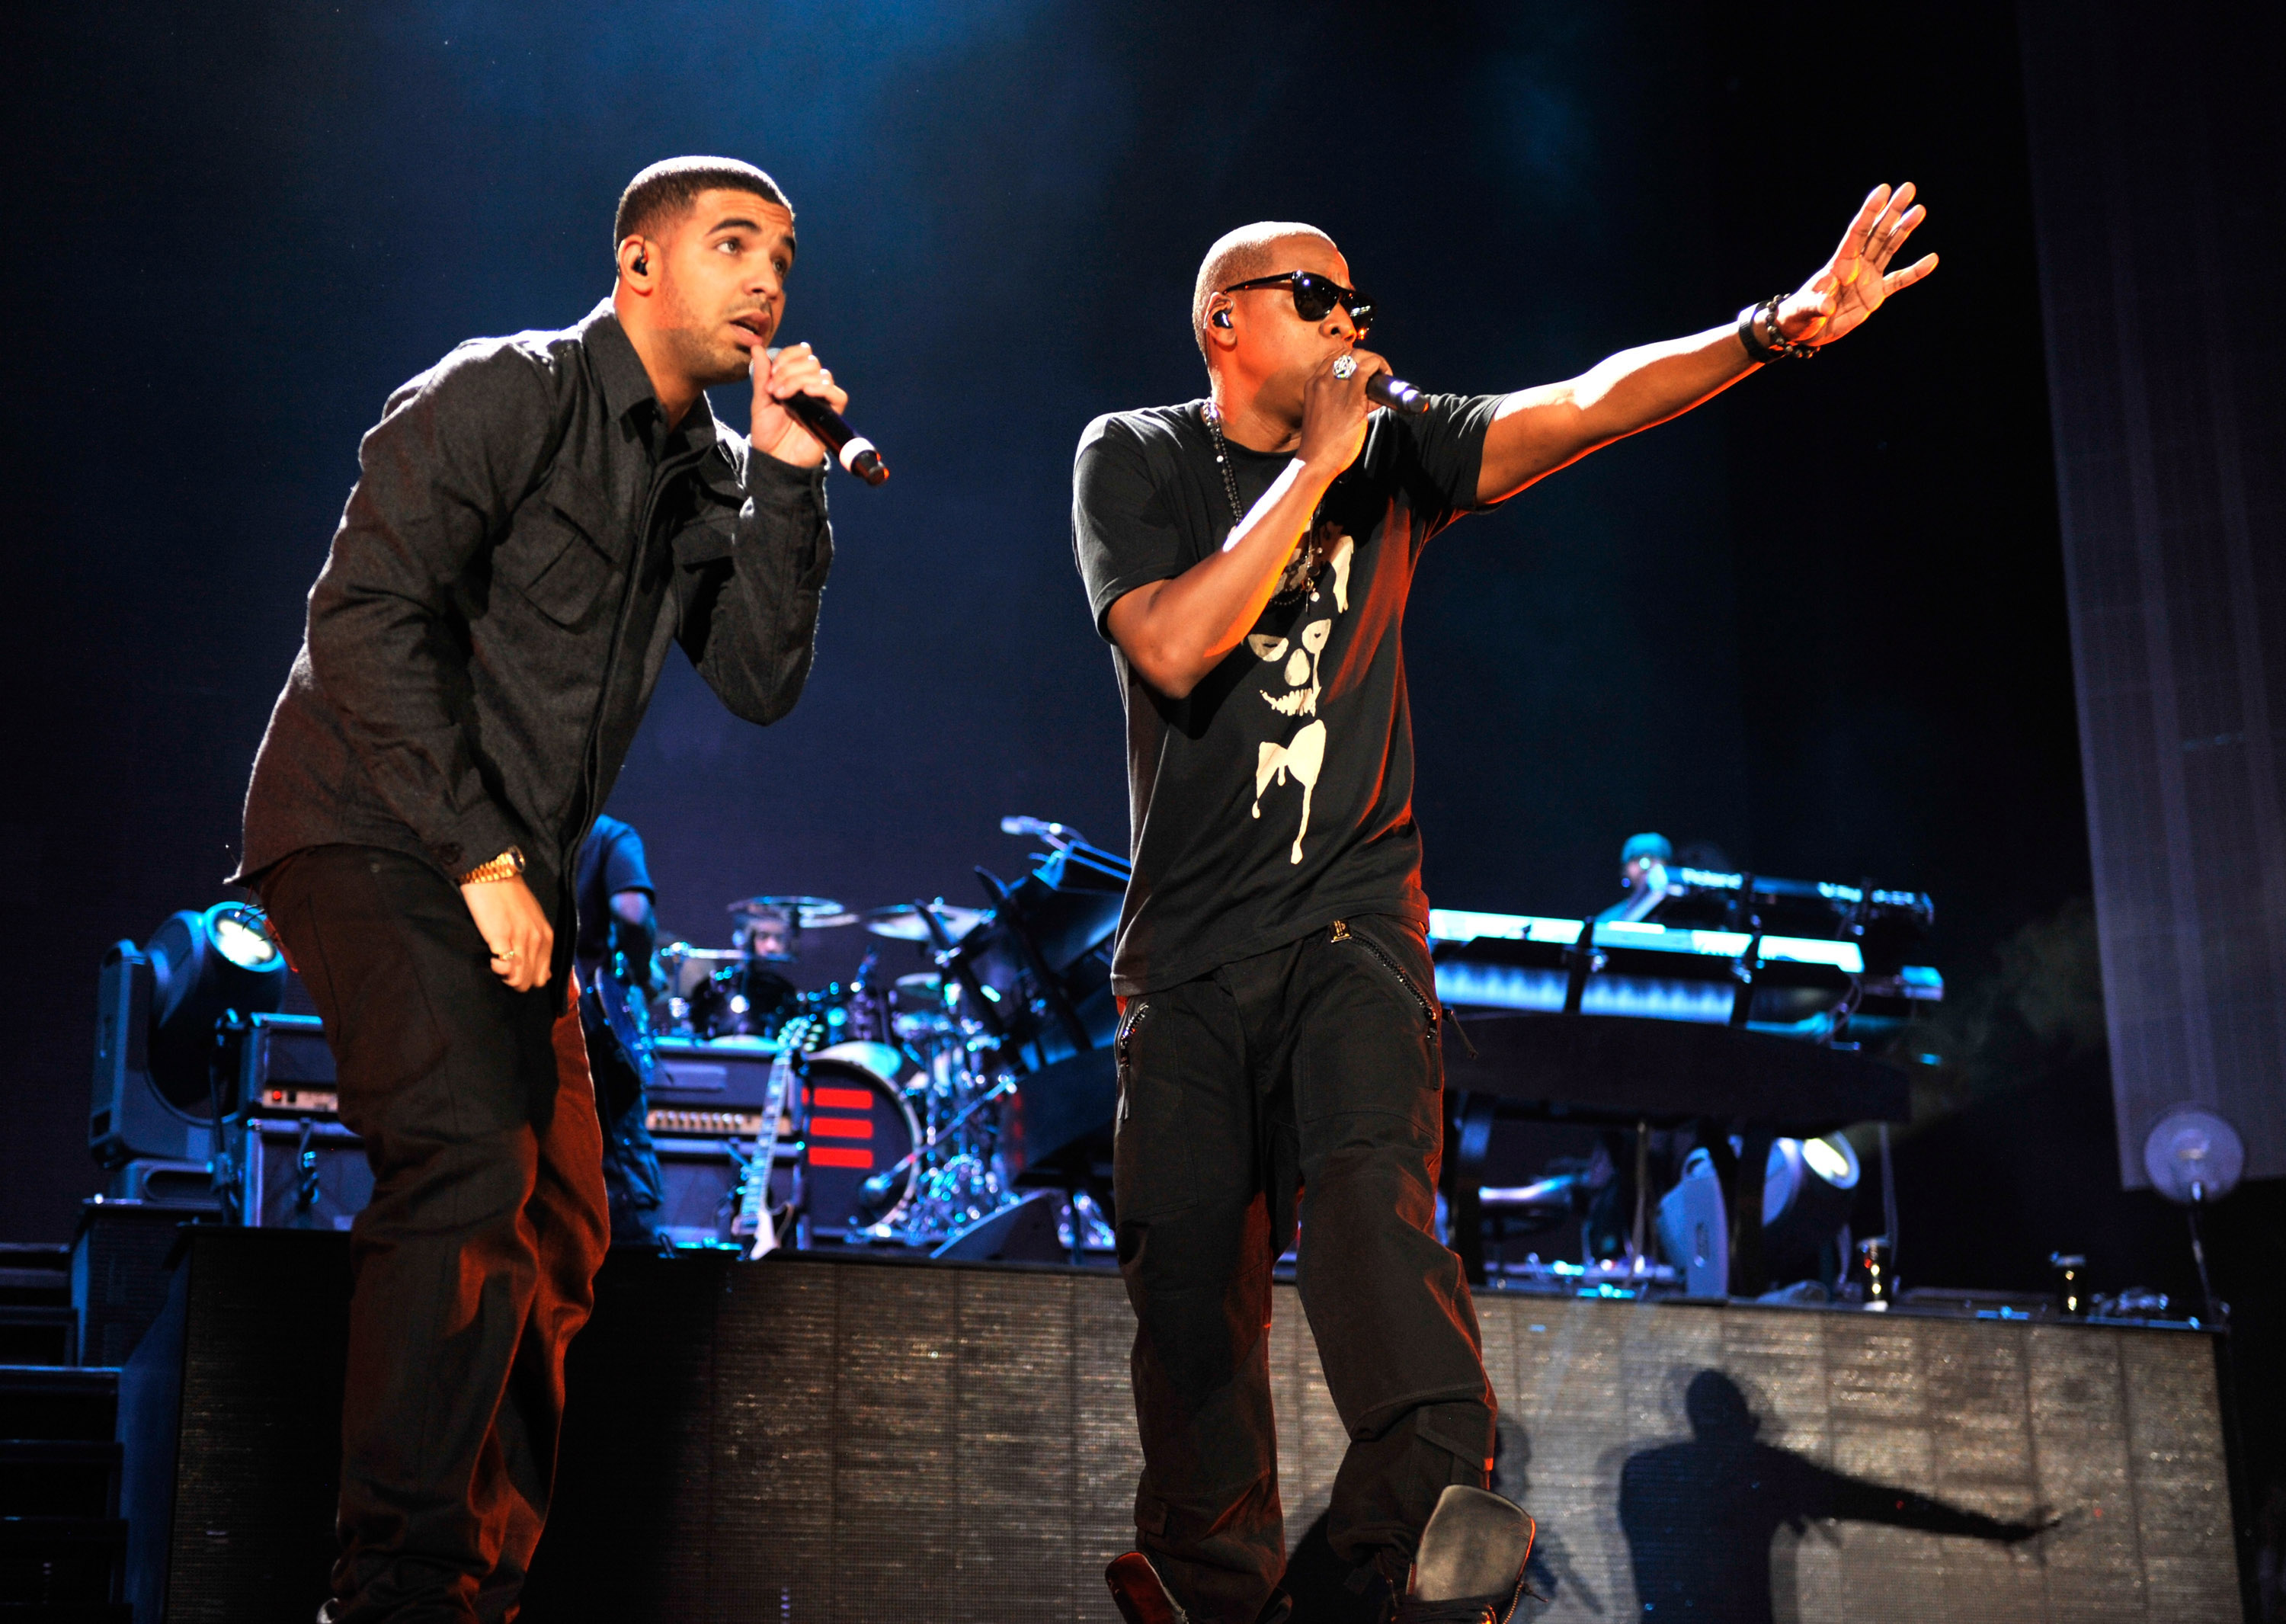 Jay-Z and Eminem 'Home & Home' Concert - New York - Show